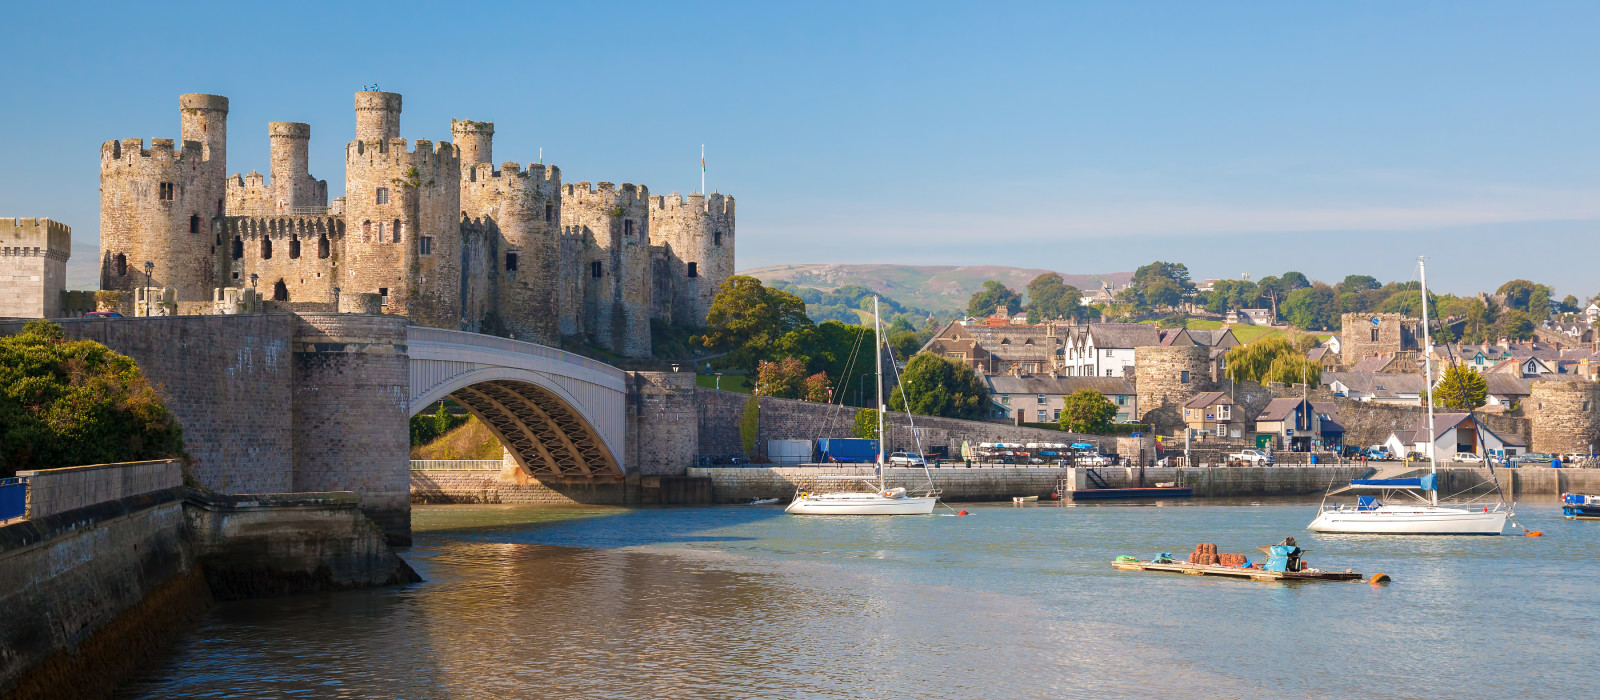 Famous Conwy Castle in Wales, United Kingdom, series of Walesh castles, Europe